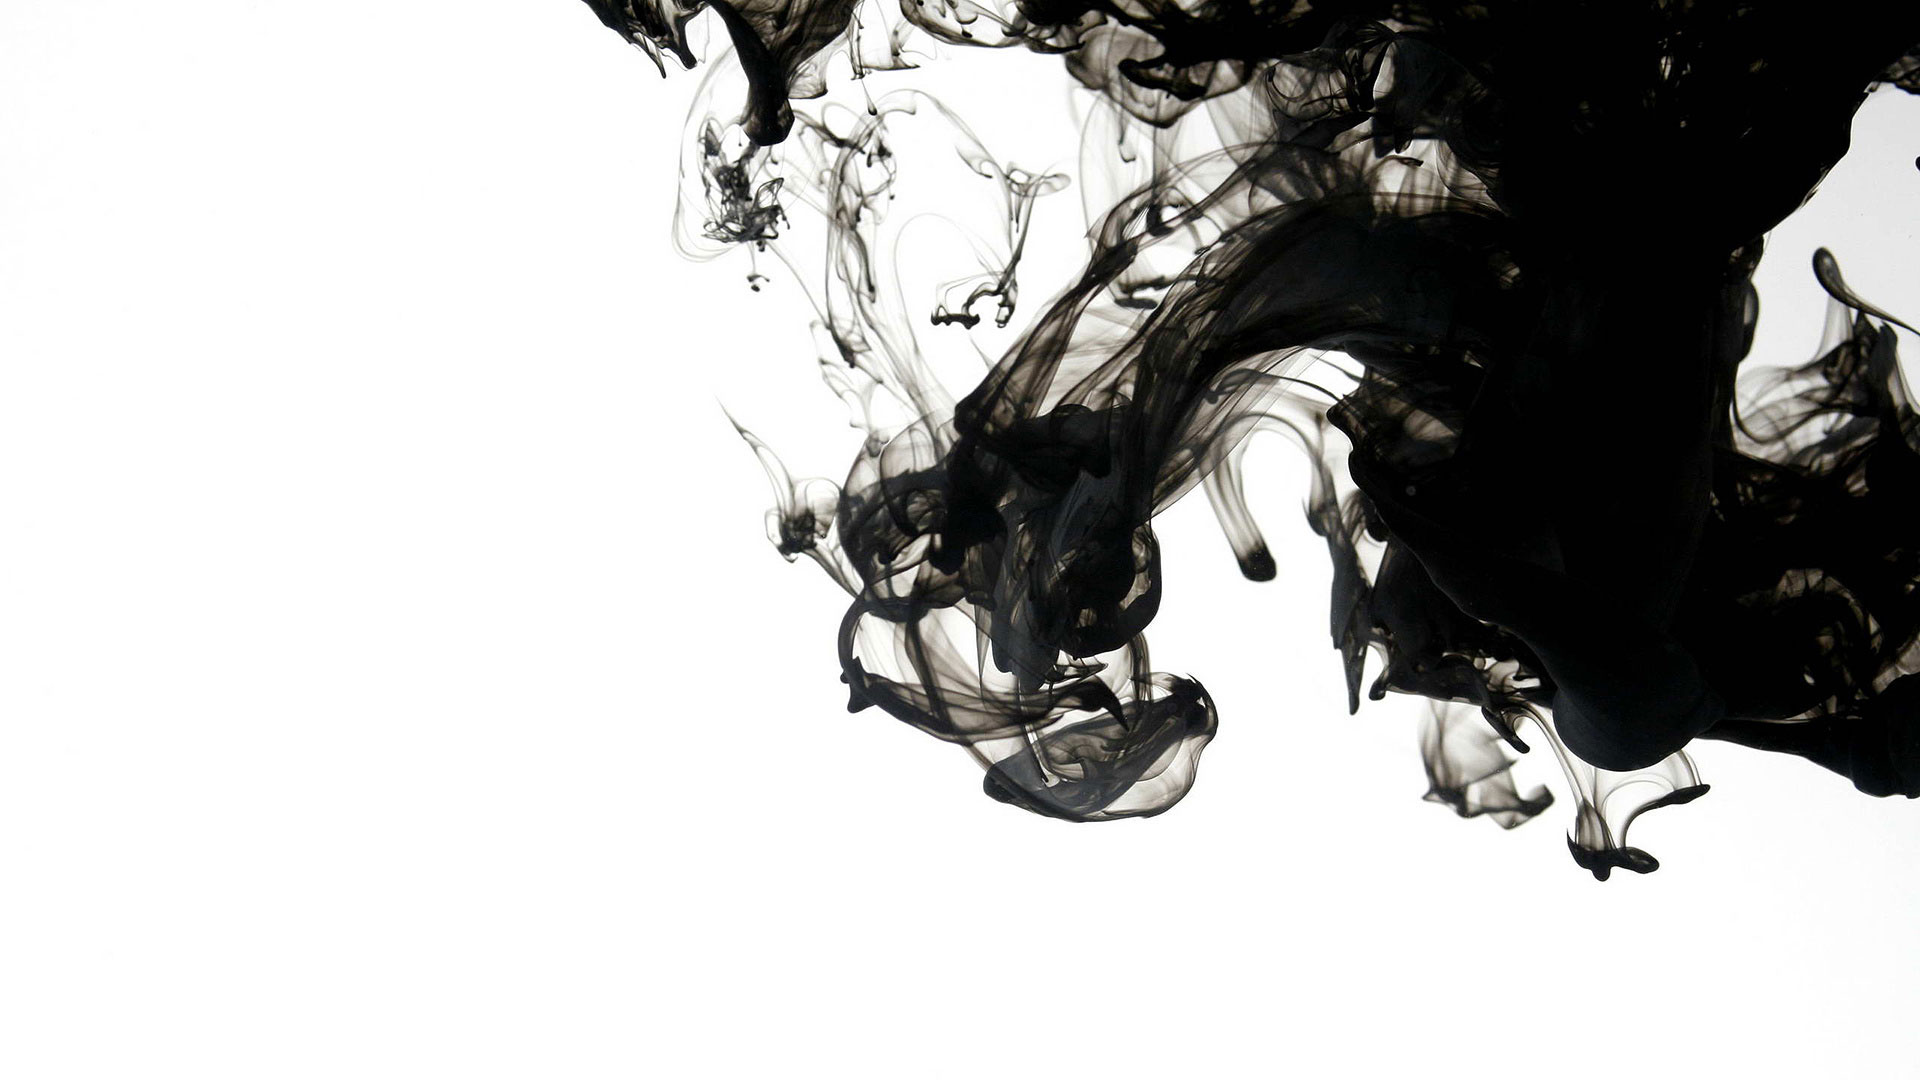 Abstract Black And White Wallpaper